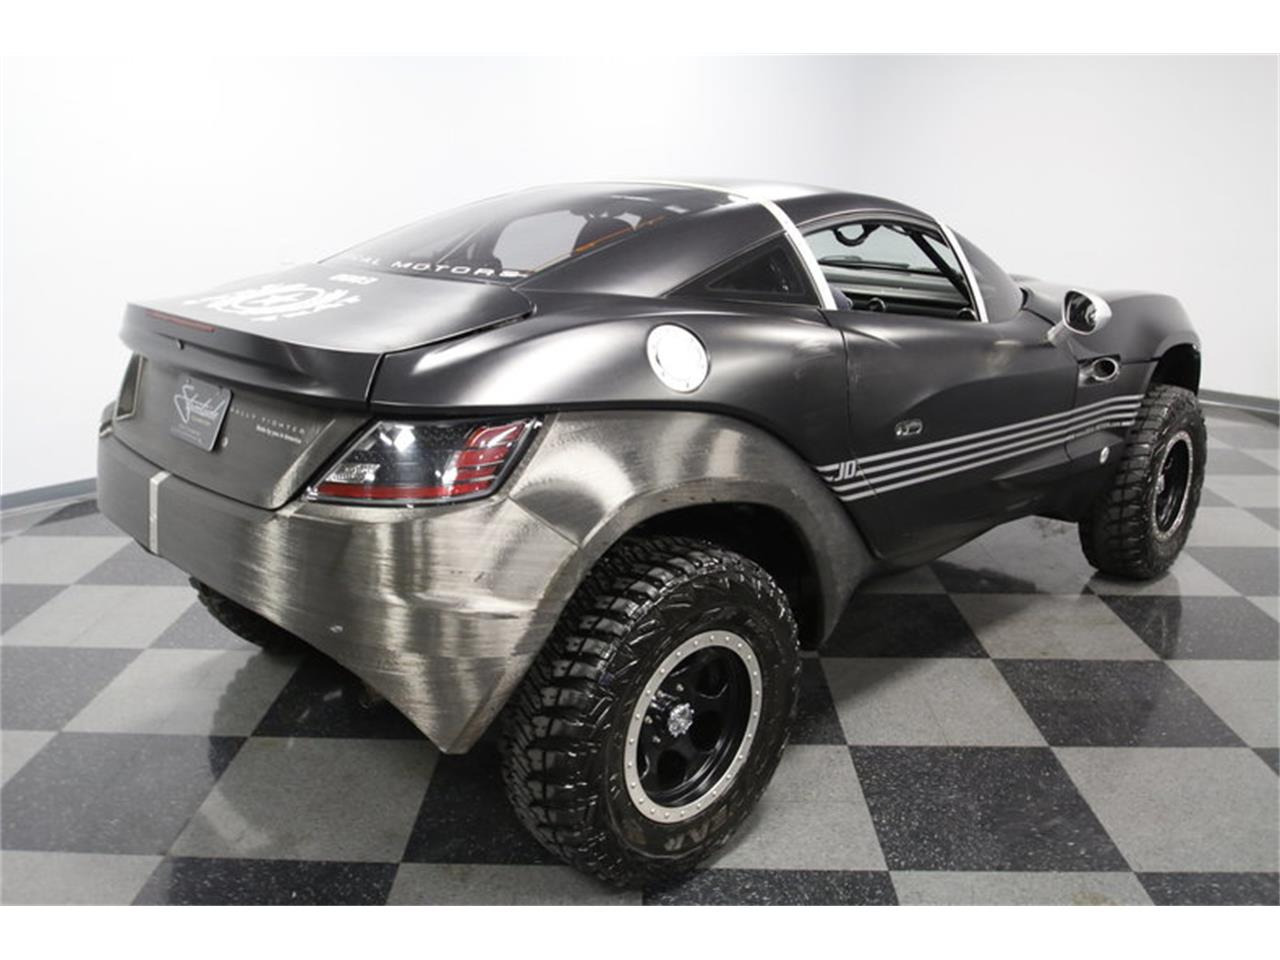 Large Picture of '11 Unspecified Race Car - $77,995.00 - MO3X